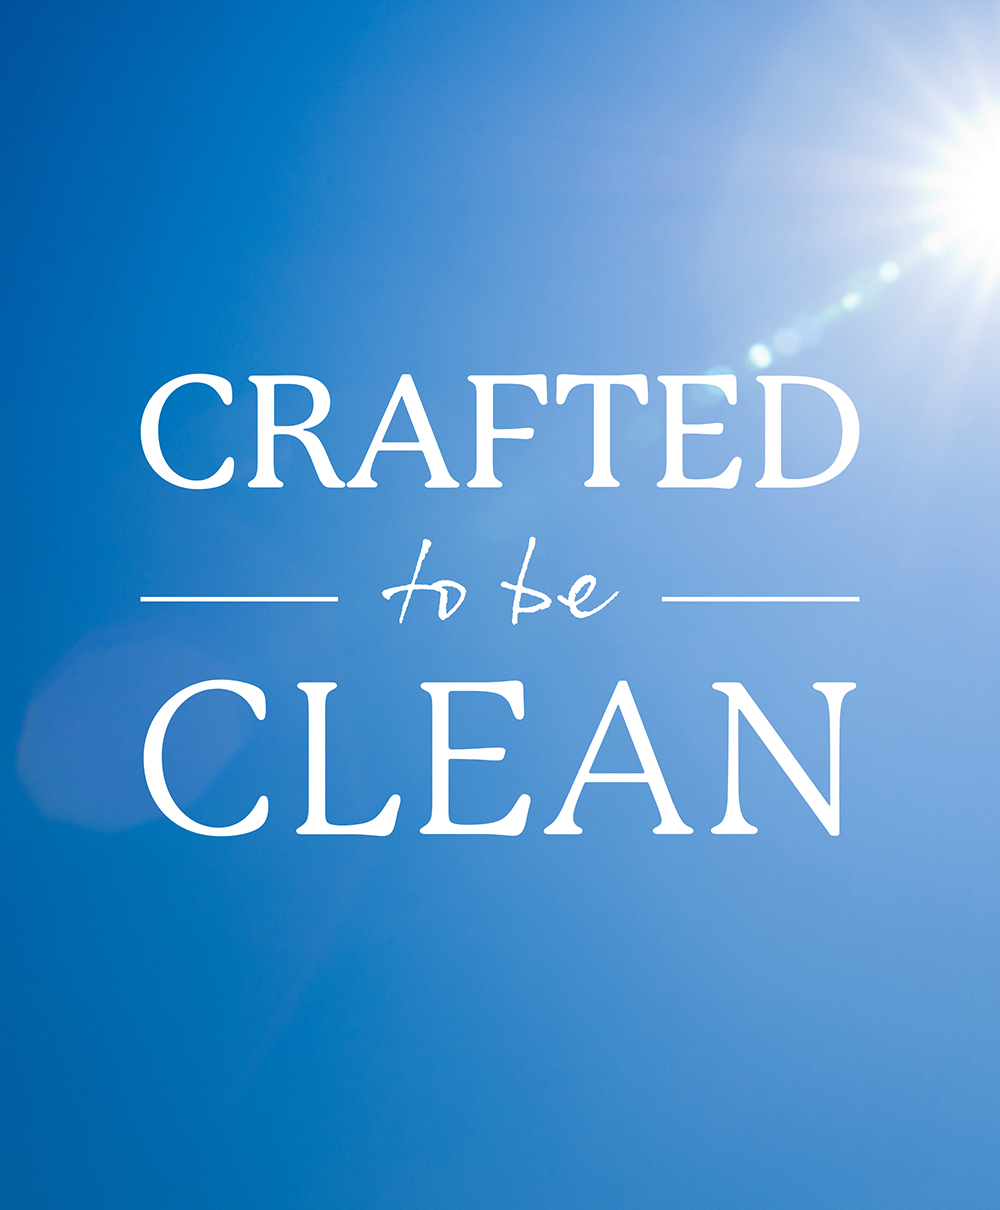 Crafted to be clean